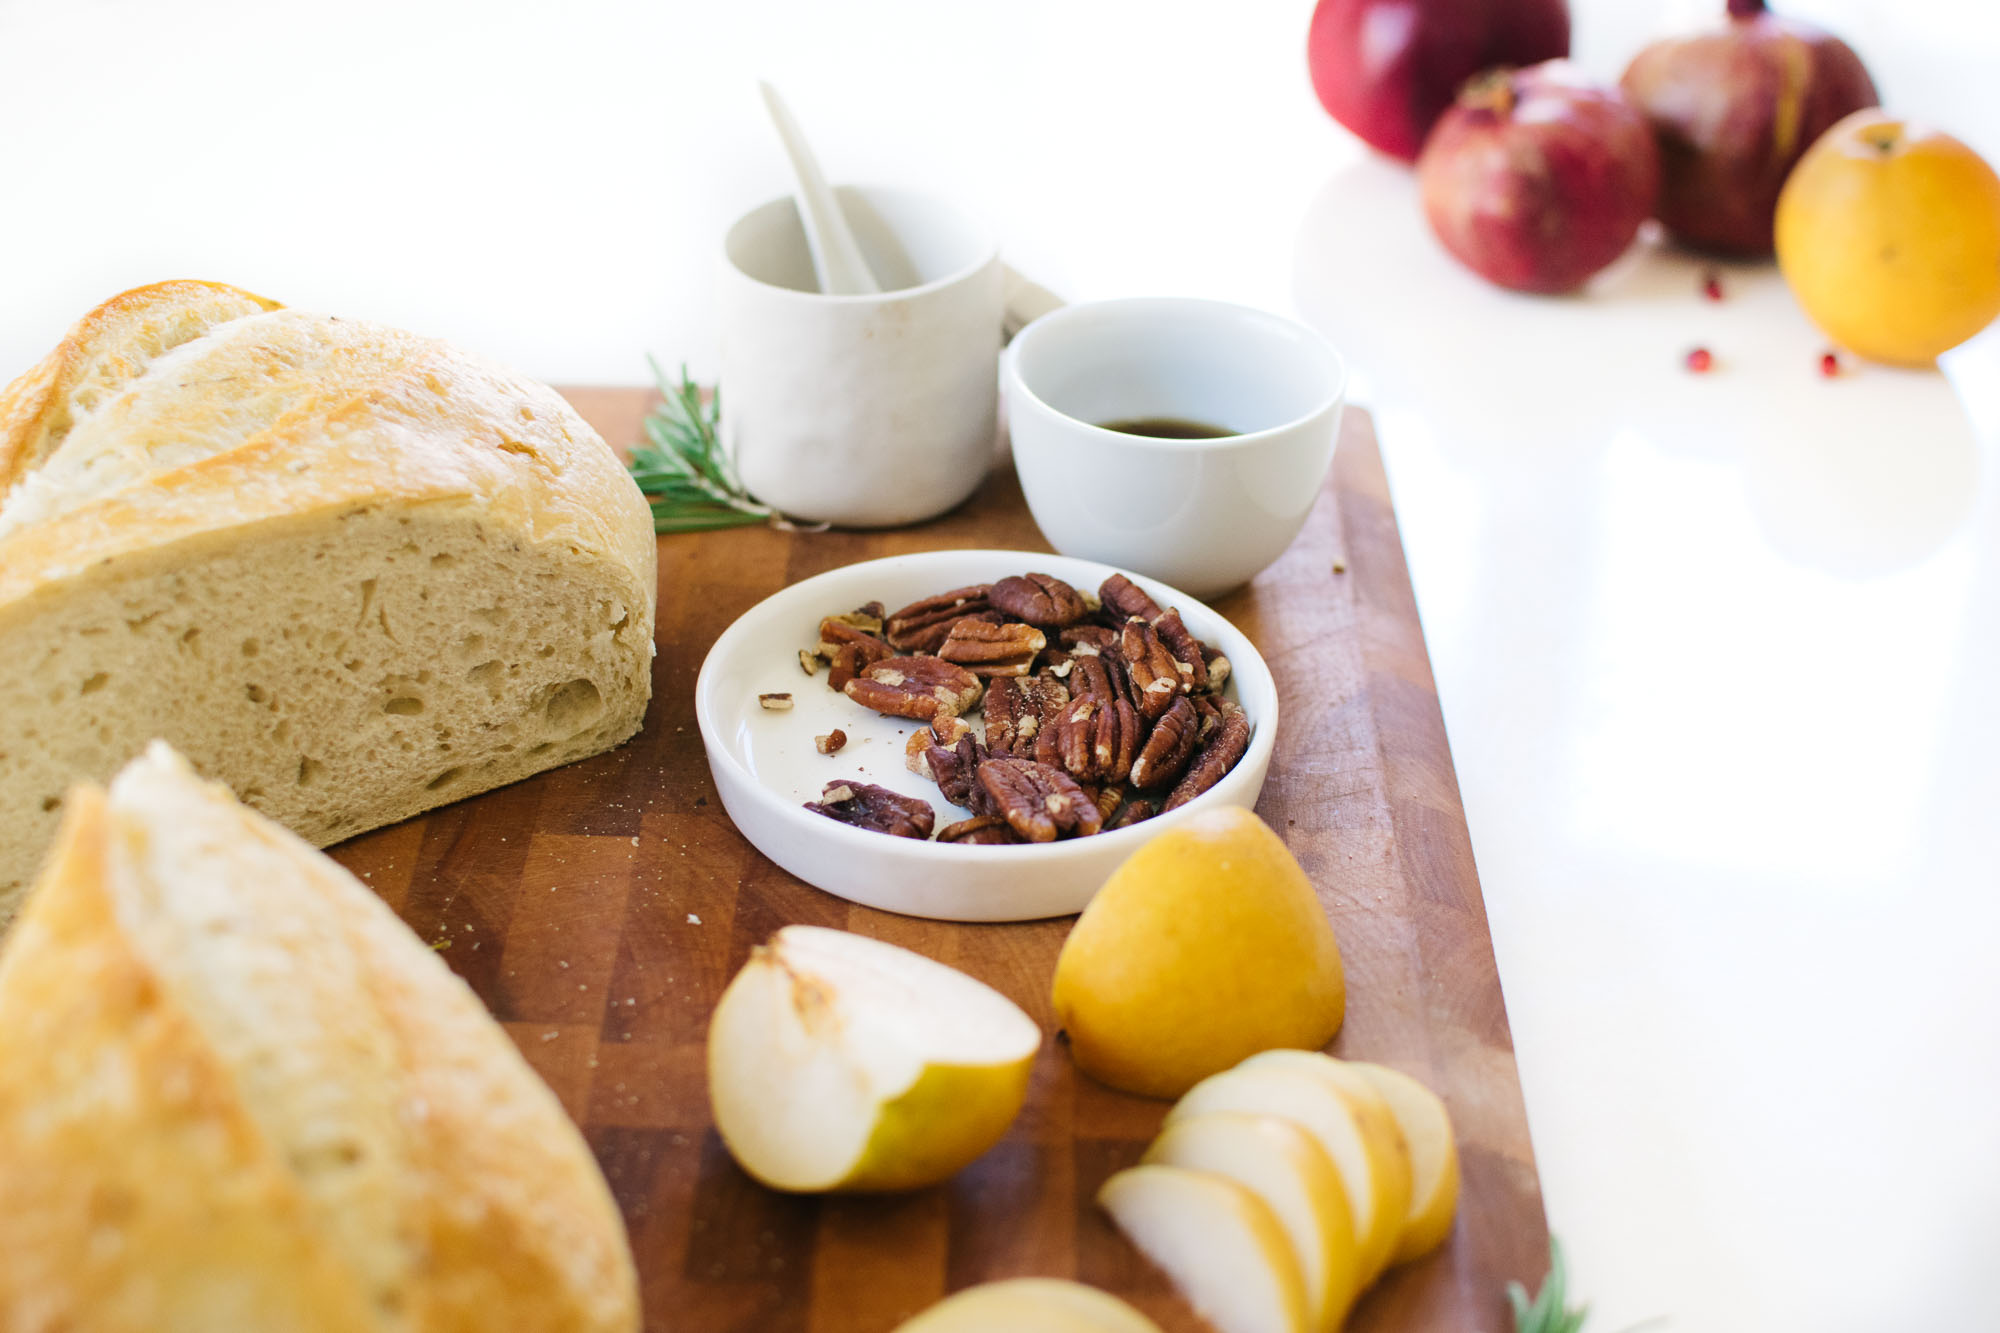 MAPLE-ROSEMARY PEAR & PECAN BAKED BRIE. | Kale and Caramel